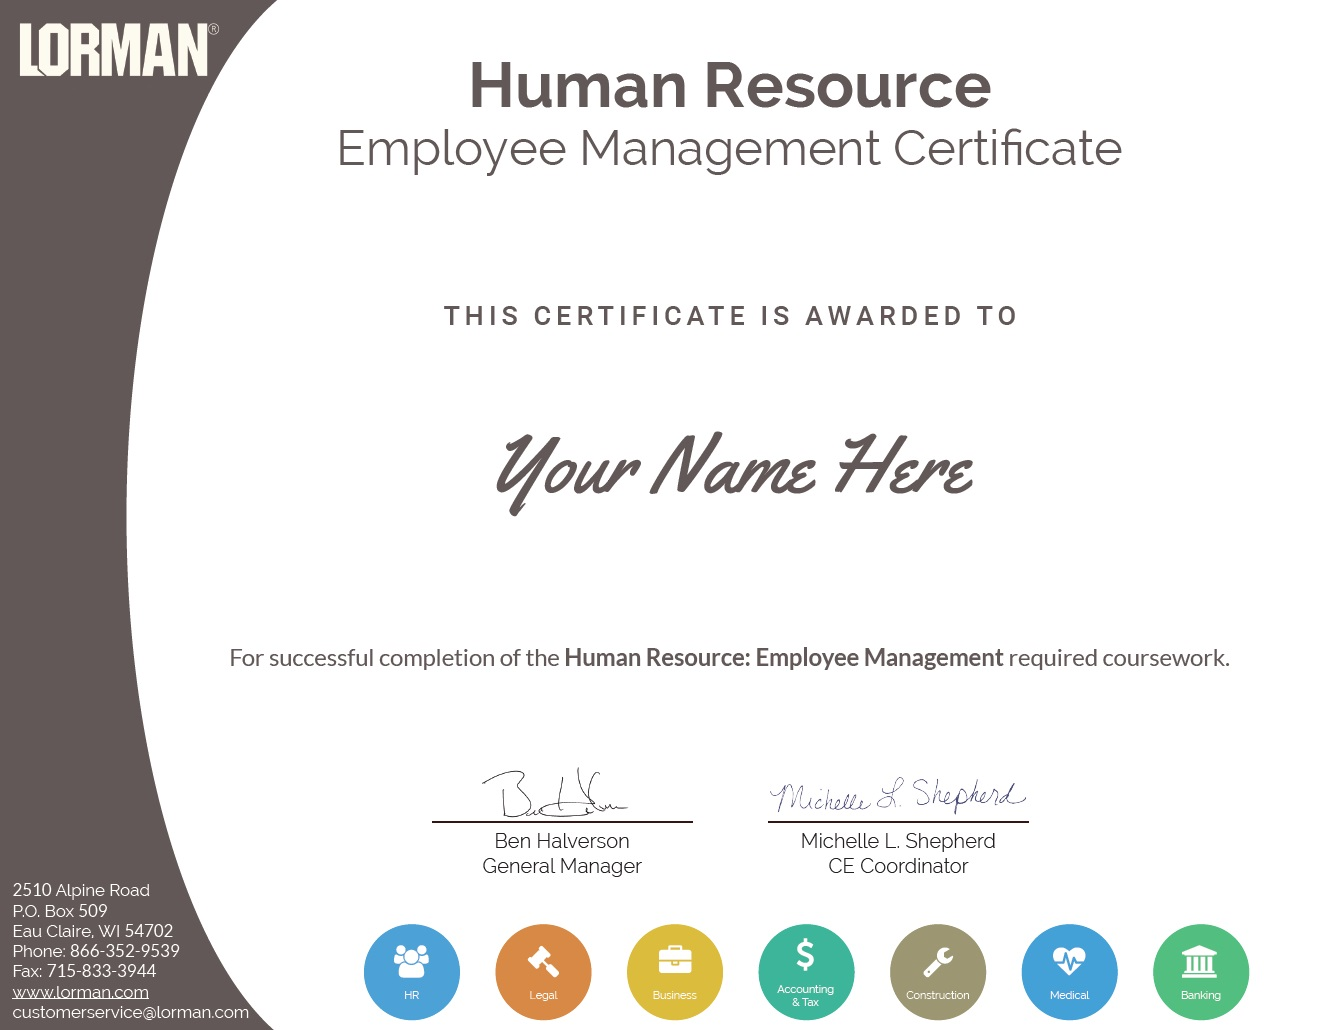 Human Resource: Employee Management